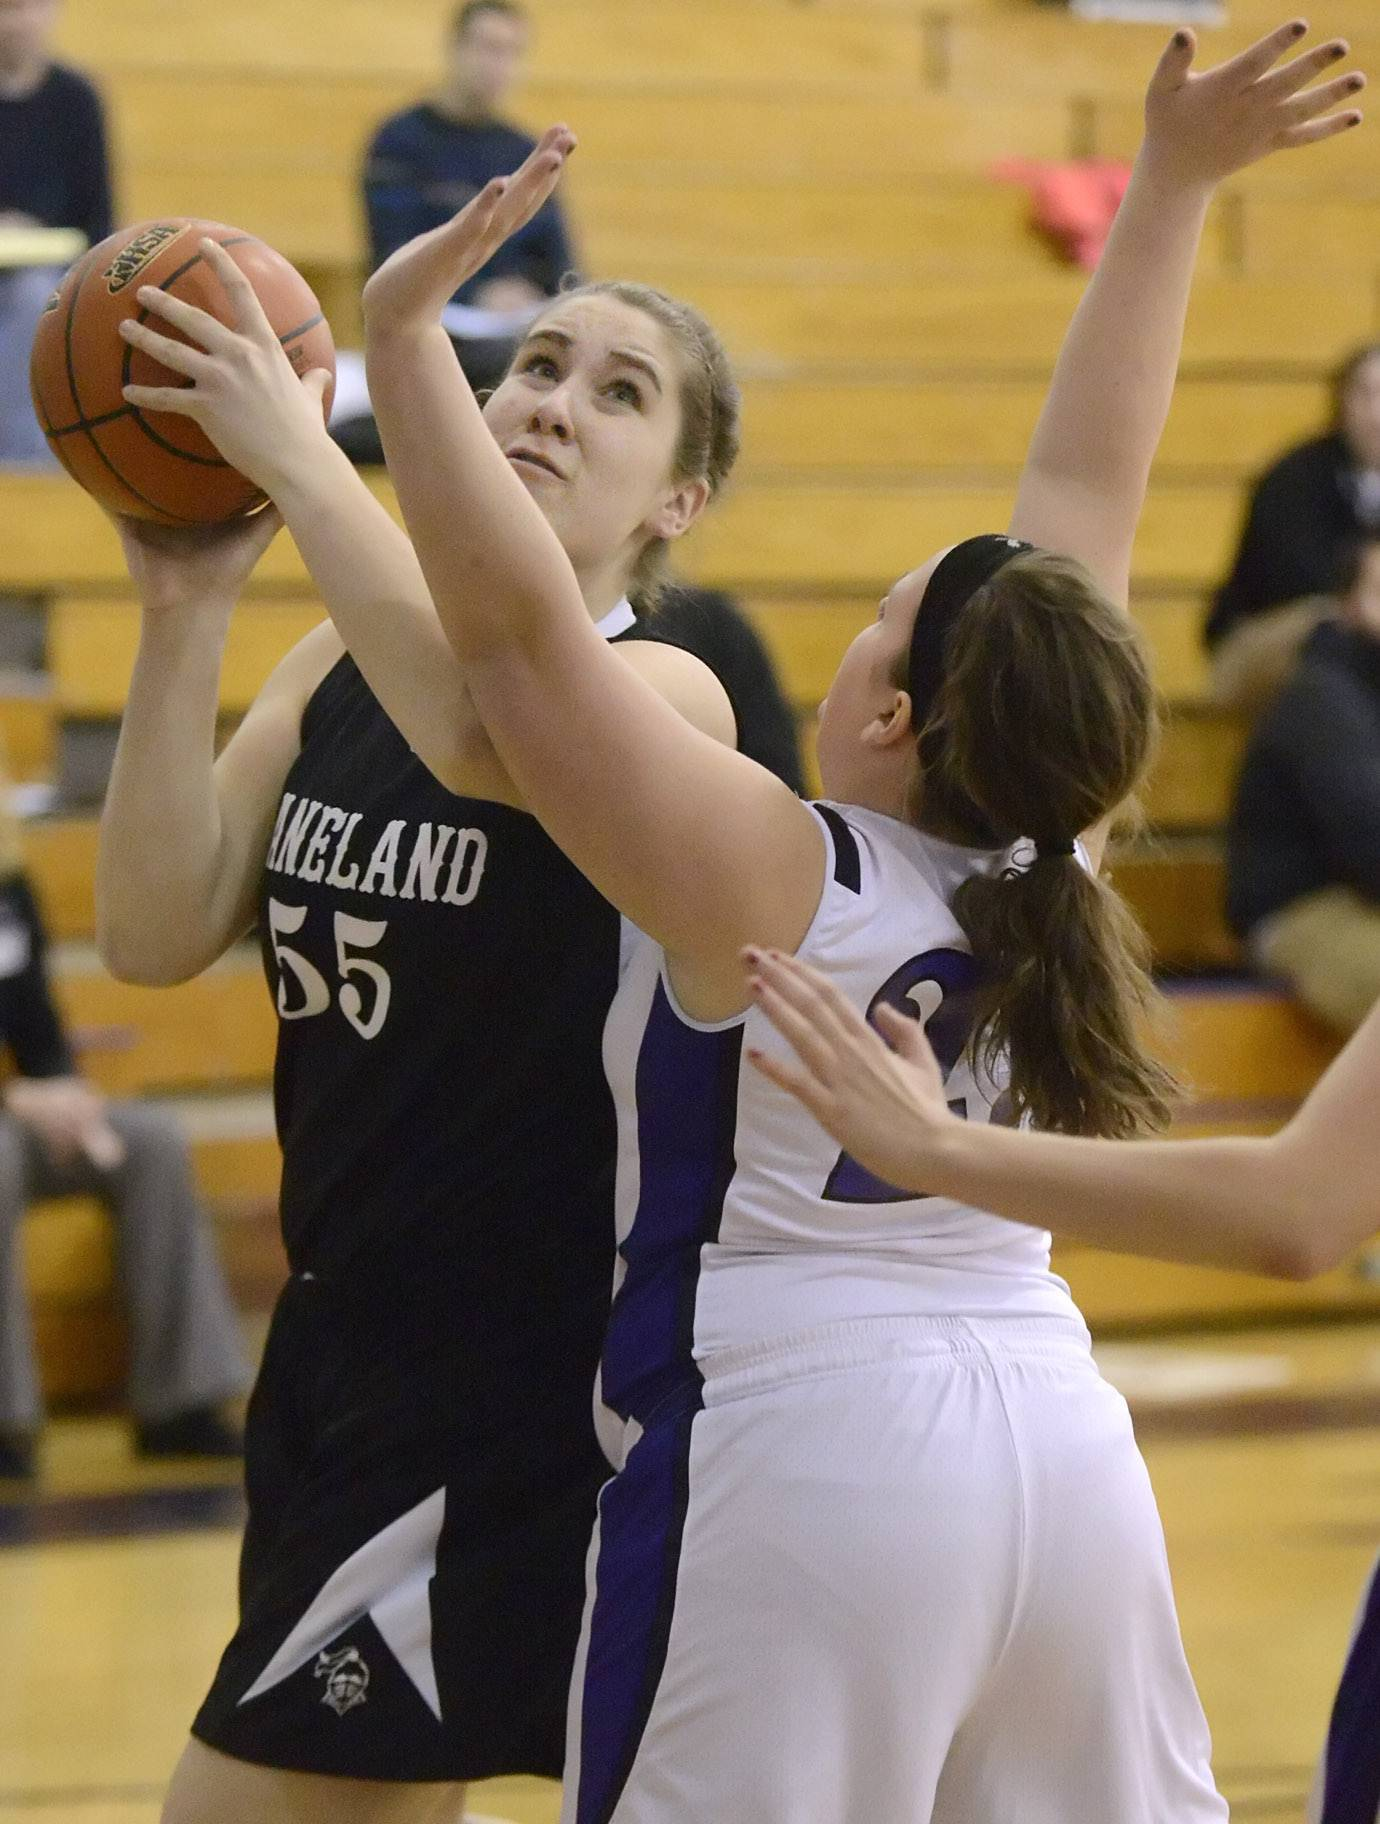 Kaneland's Bailey Crimmins came off the bench with 6 points in Wednesday's regional win at Plano.